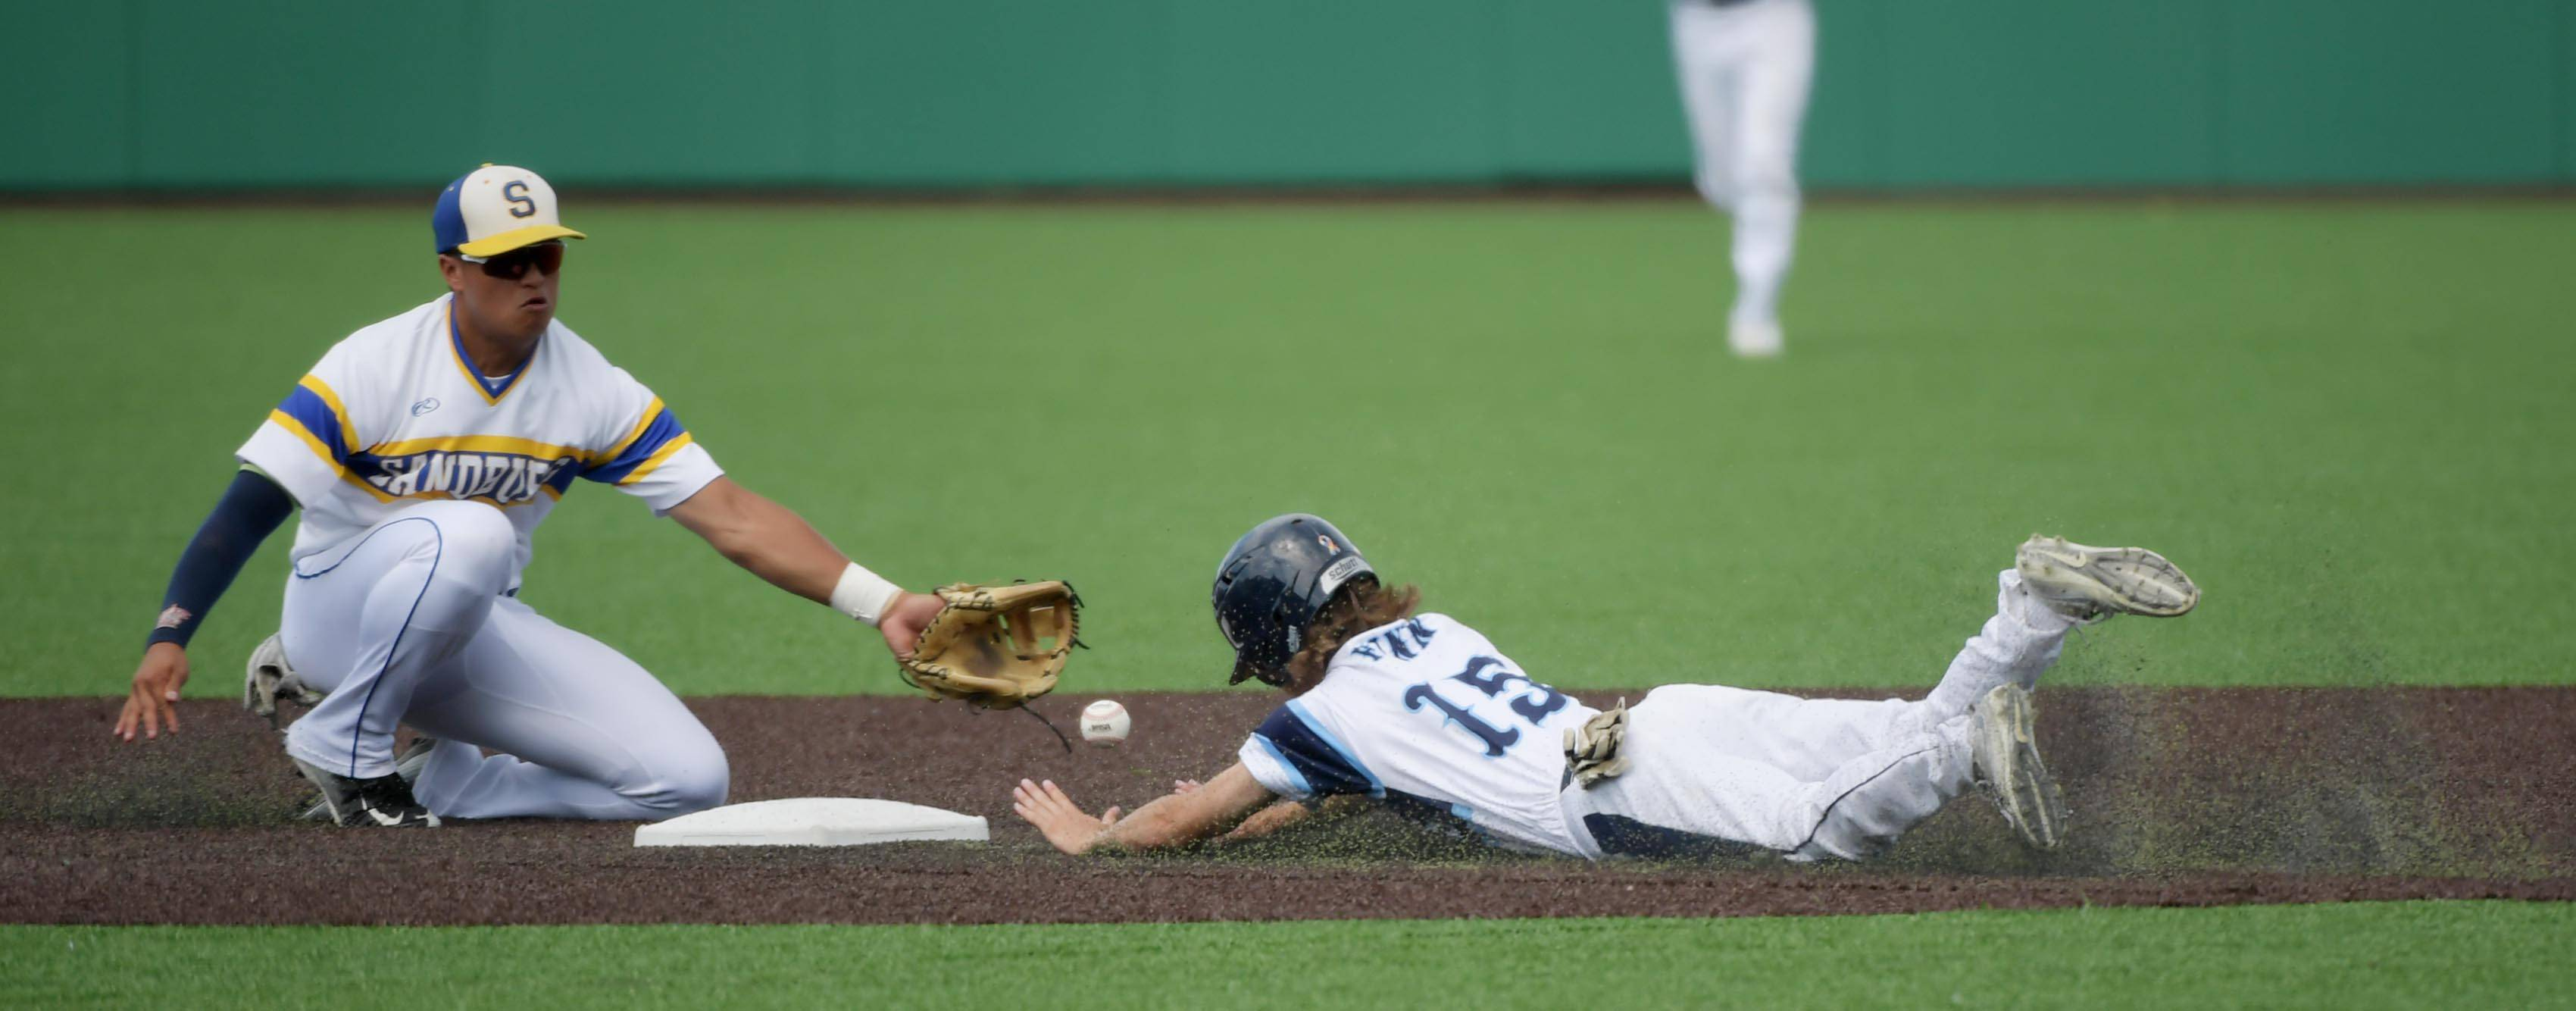 Lake Park's Tommy Finn steals second base as Sandburg's Branden Comia fields the ball in the Class 4A state baseball third place game at Route 66 Stadium in Joliet Saturday.